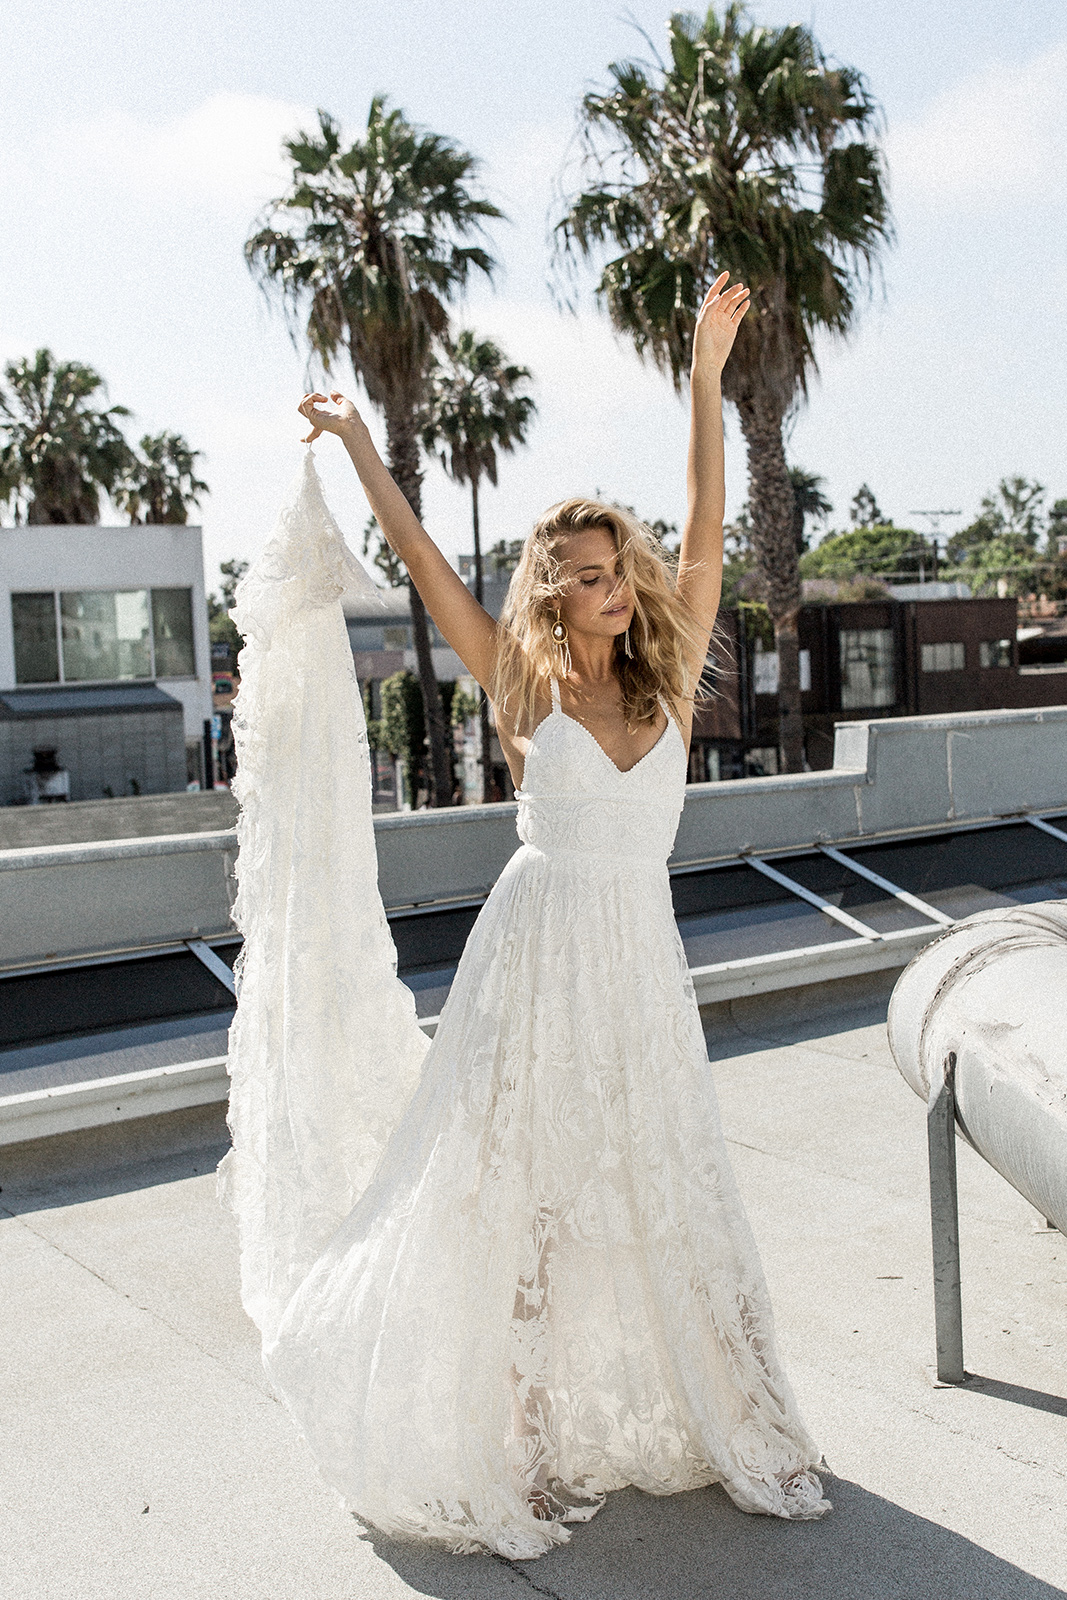 These are the 10 best bridal salons in Los